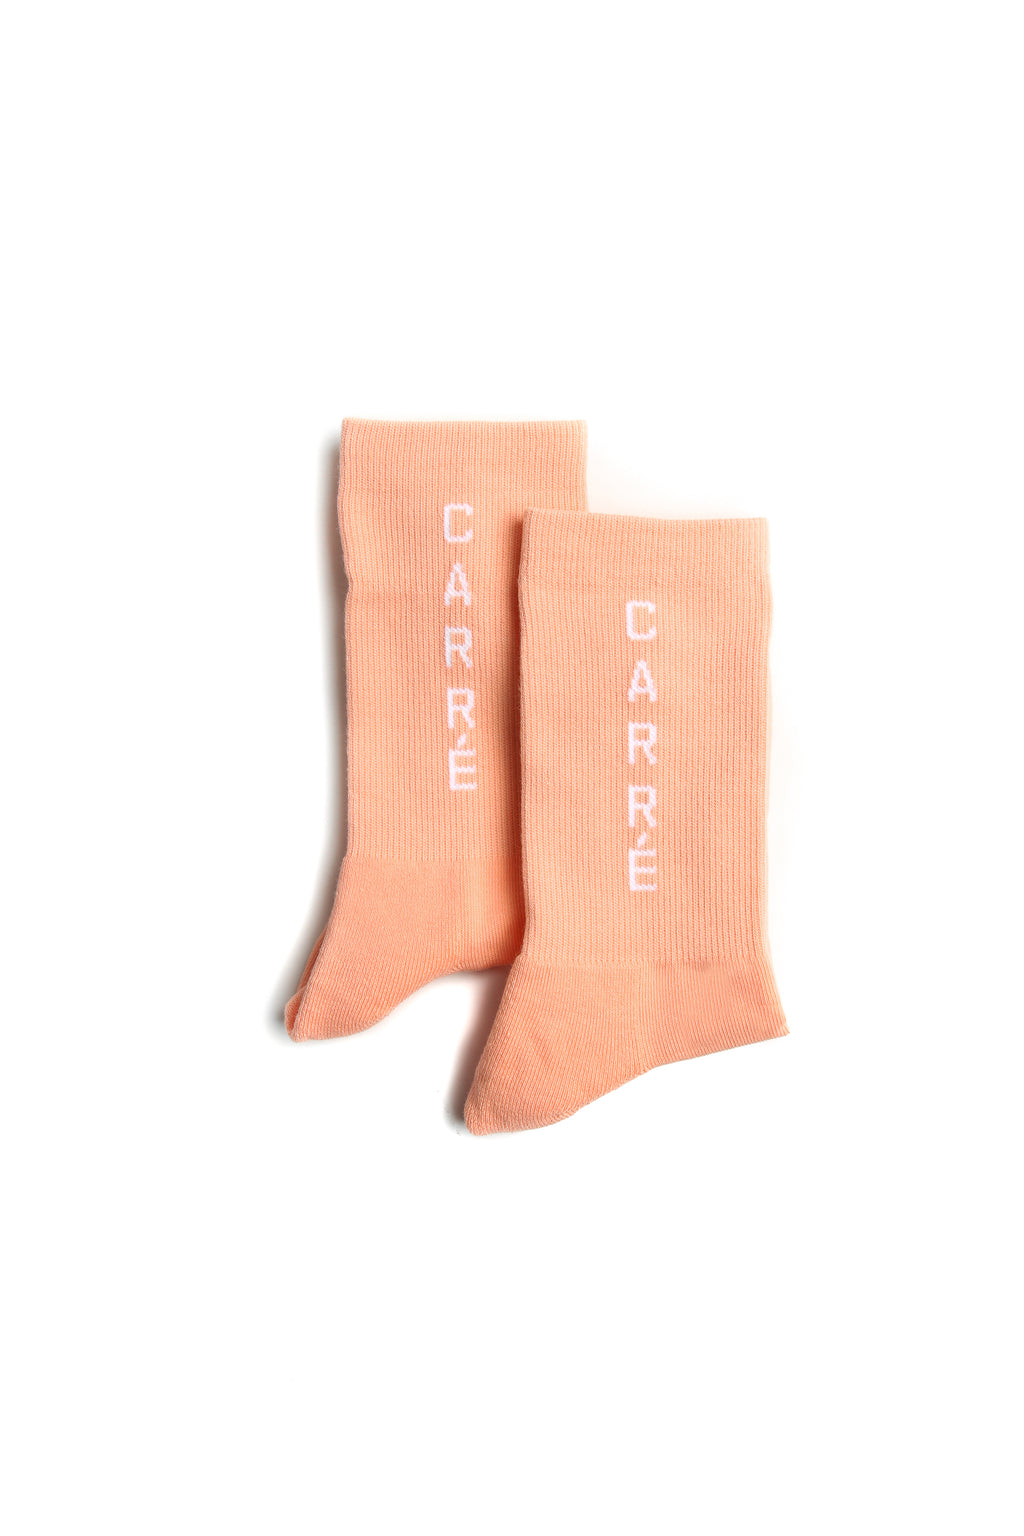 Carré Longitude Socks Peach